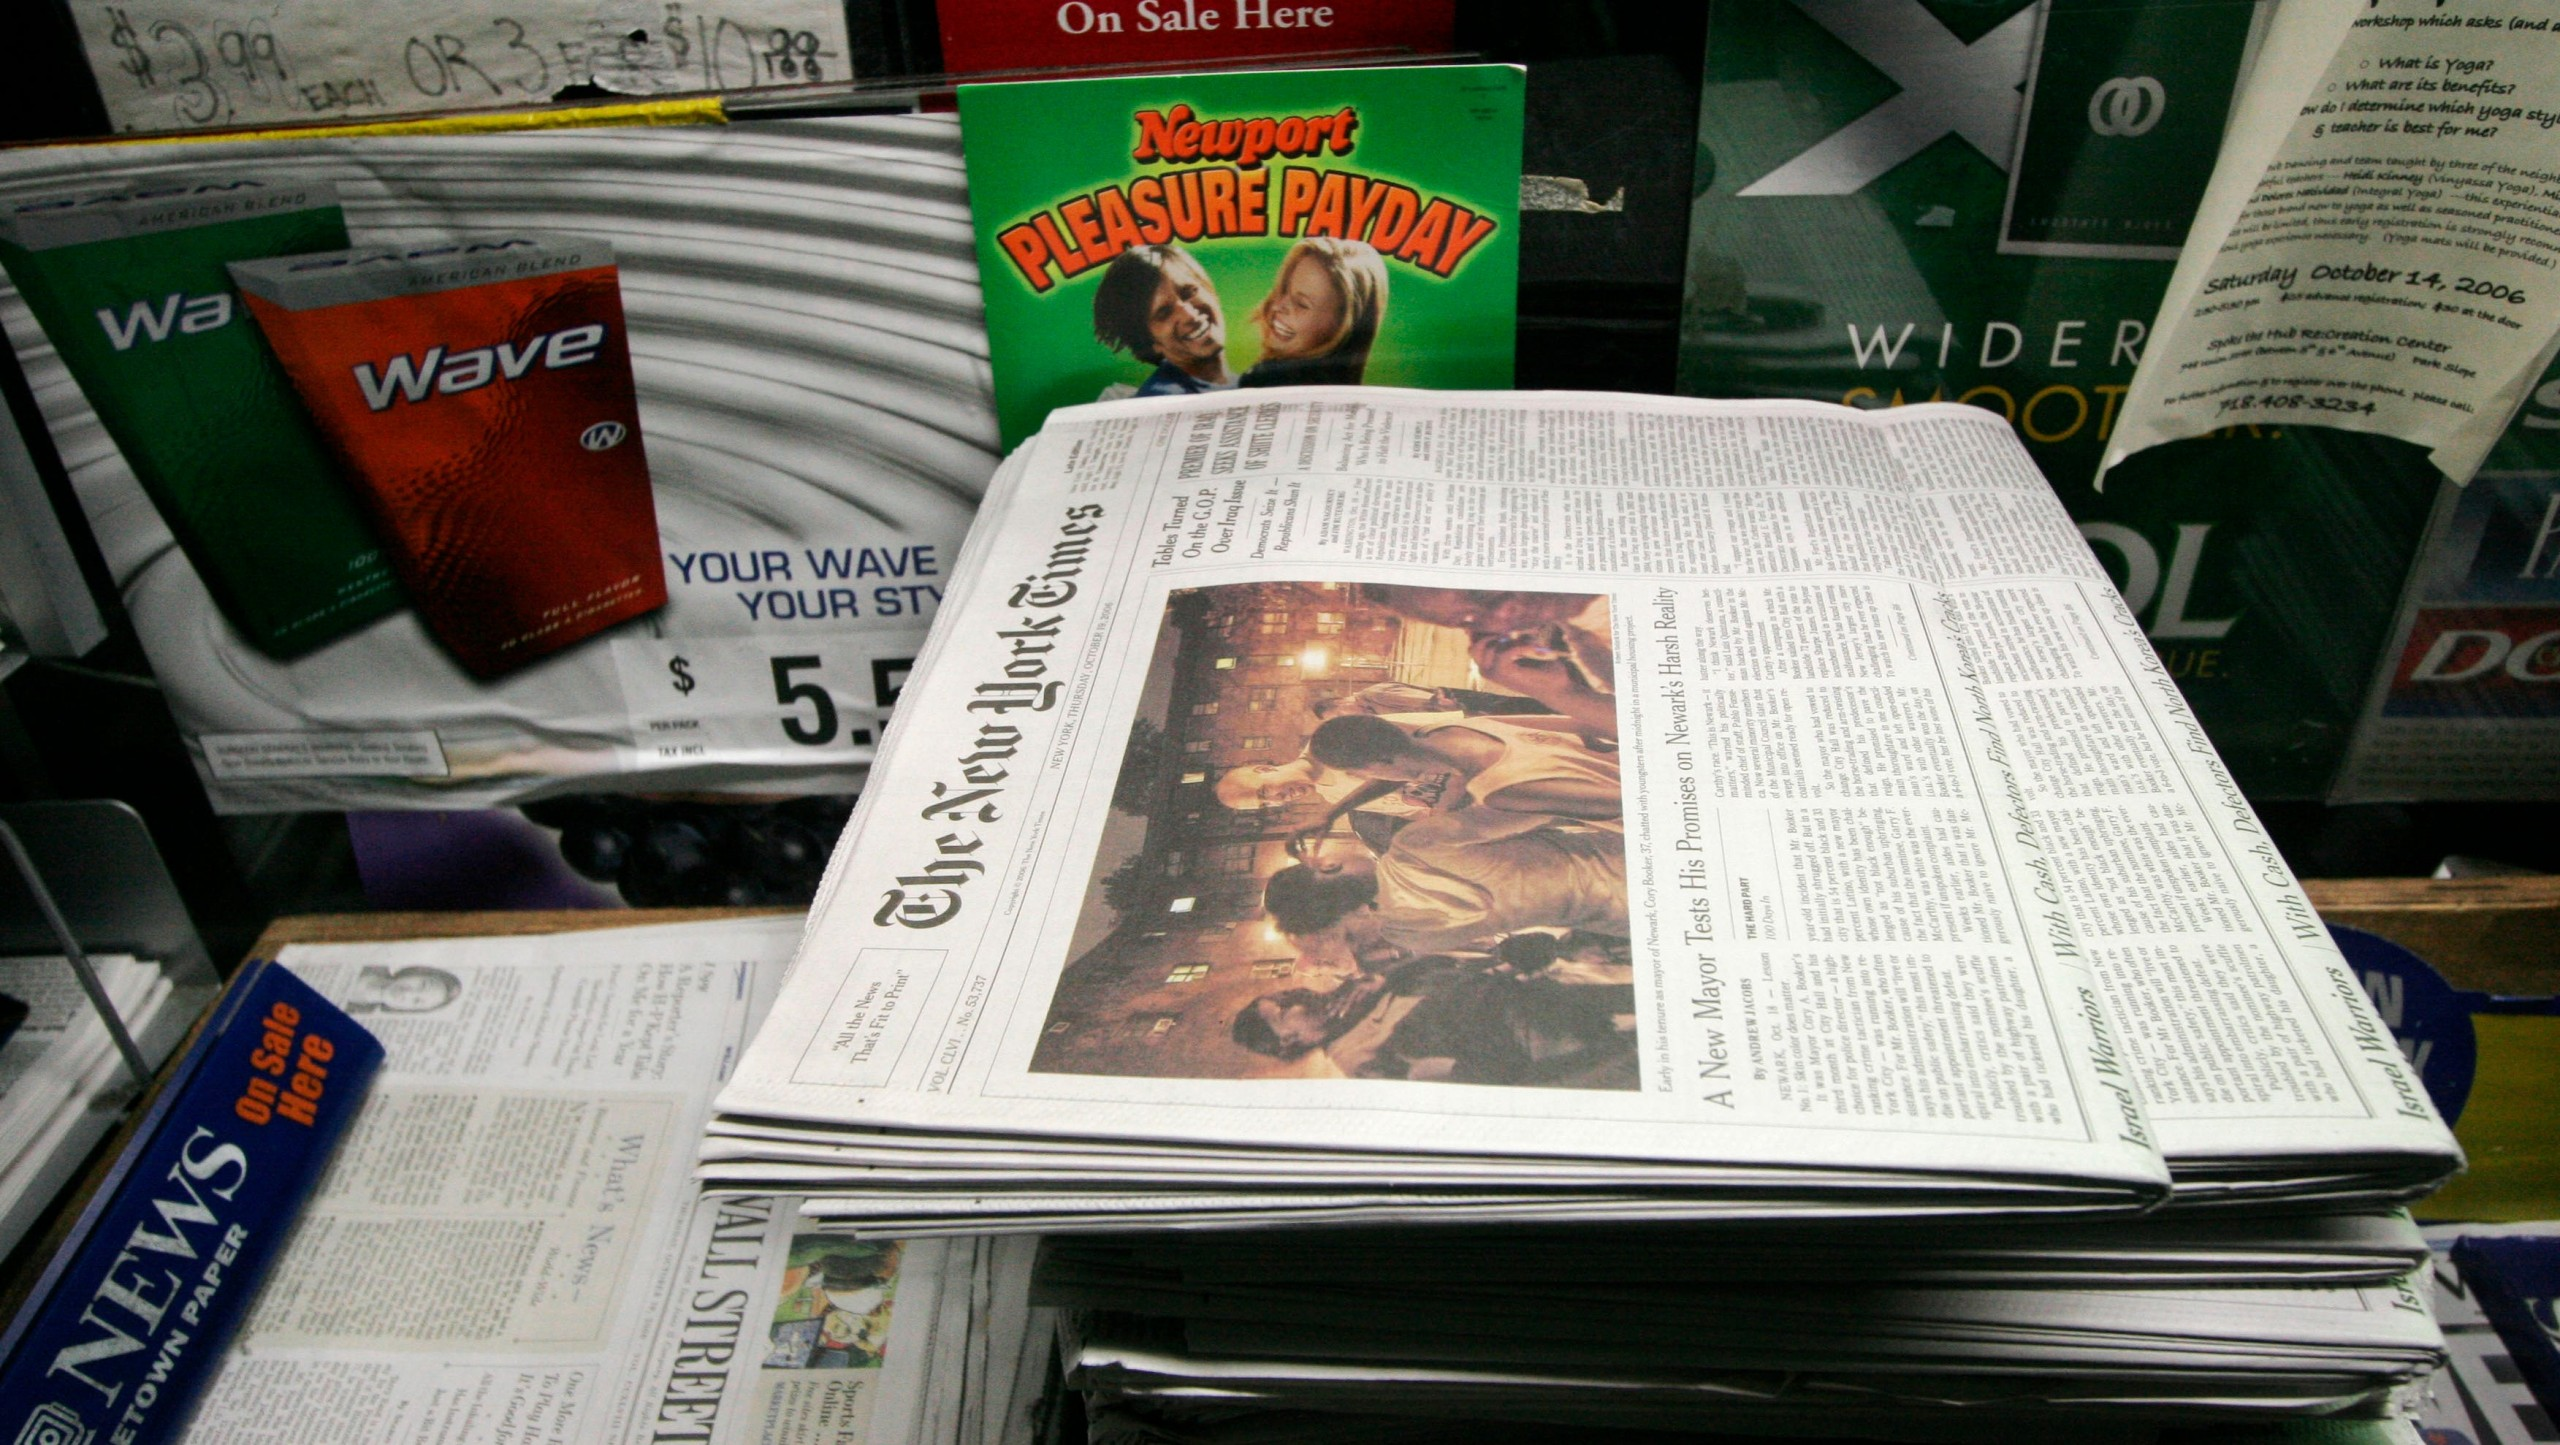 A newspaper with an open book on a table